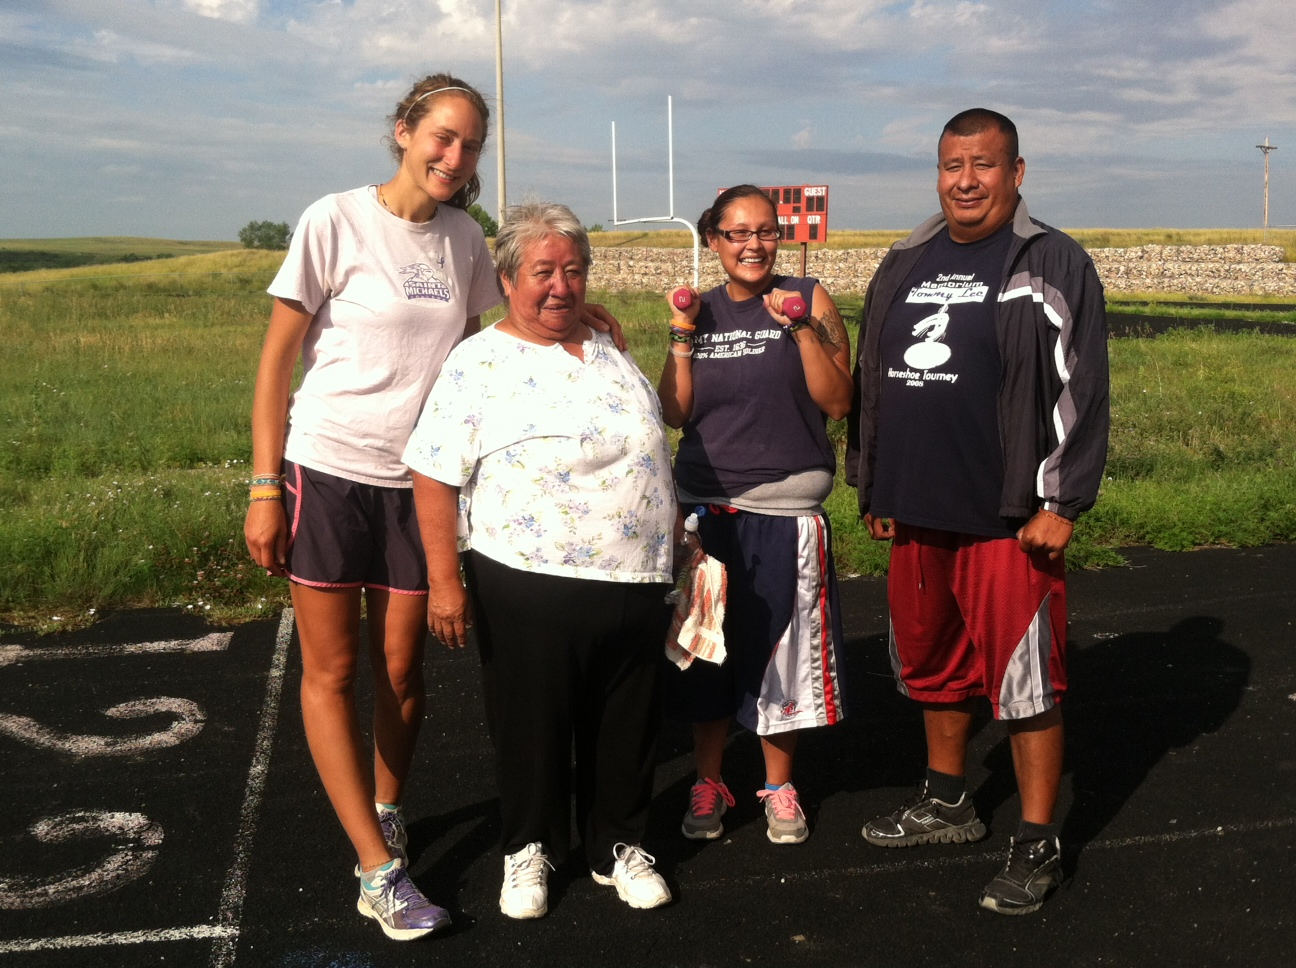 Copy of Walking a morning mile to create healthful practices